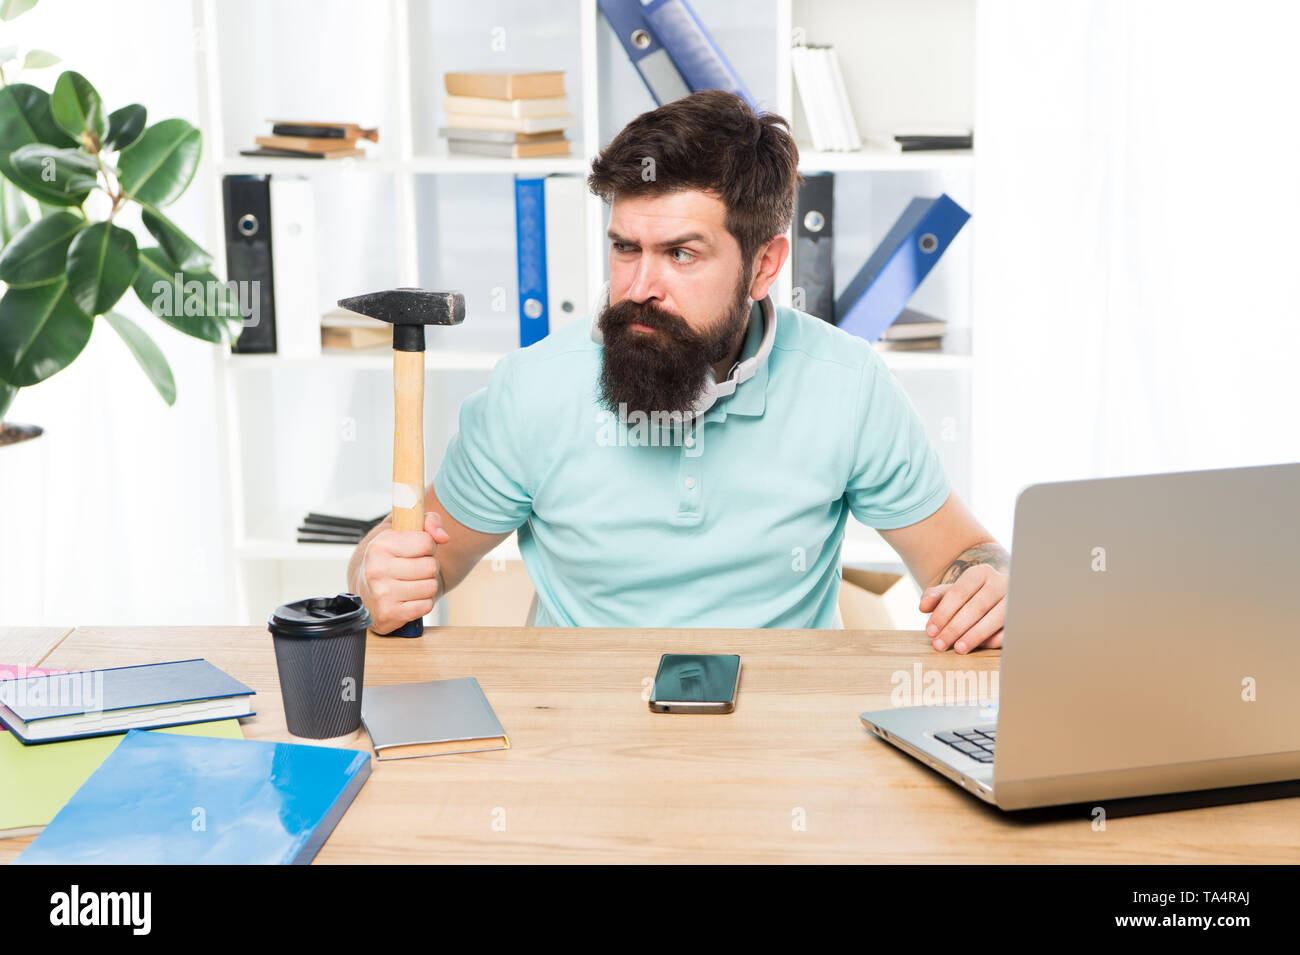 Office life makes him crazy. Businessman with beard and mustache gone mad with hammer in a hand. Angry aggressive businessman in office. Frustrated office worker holding hammer poised ready to smash. - Stock Image